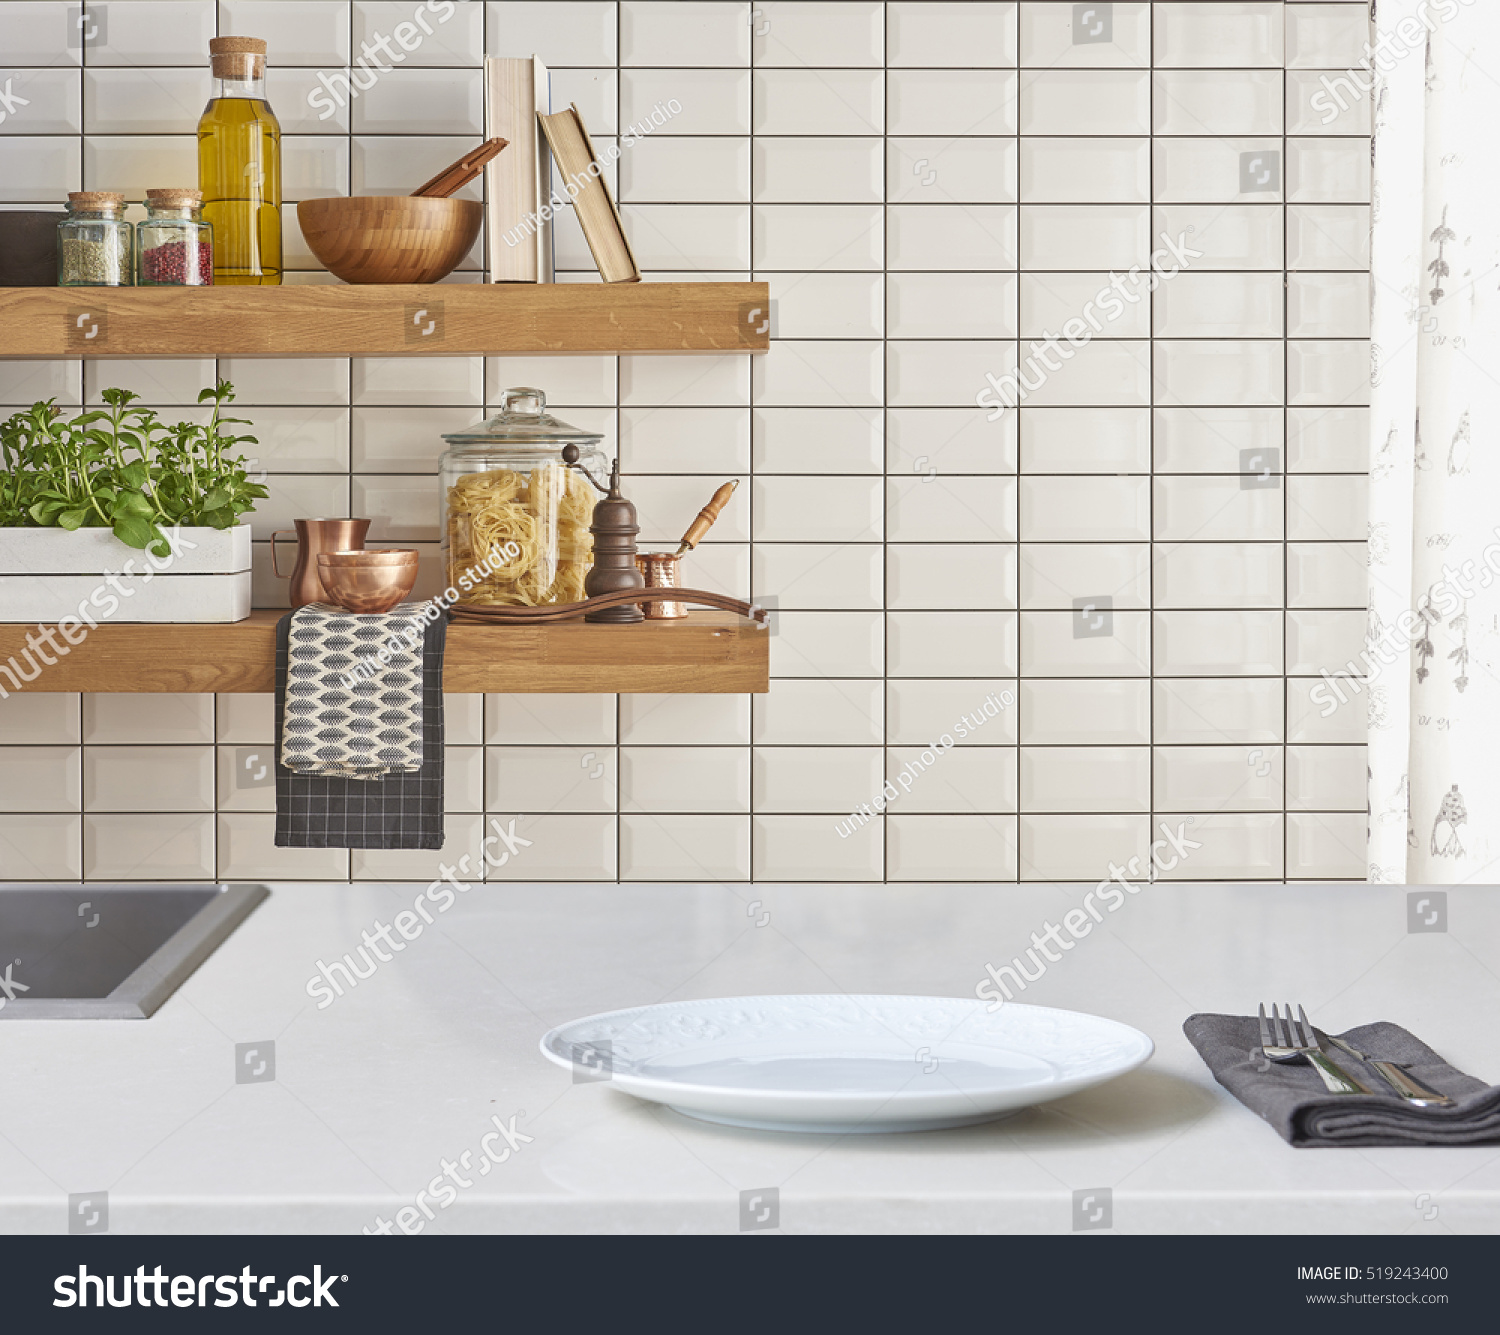 Background Modern Tiles Wall White Table Stock Photo